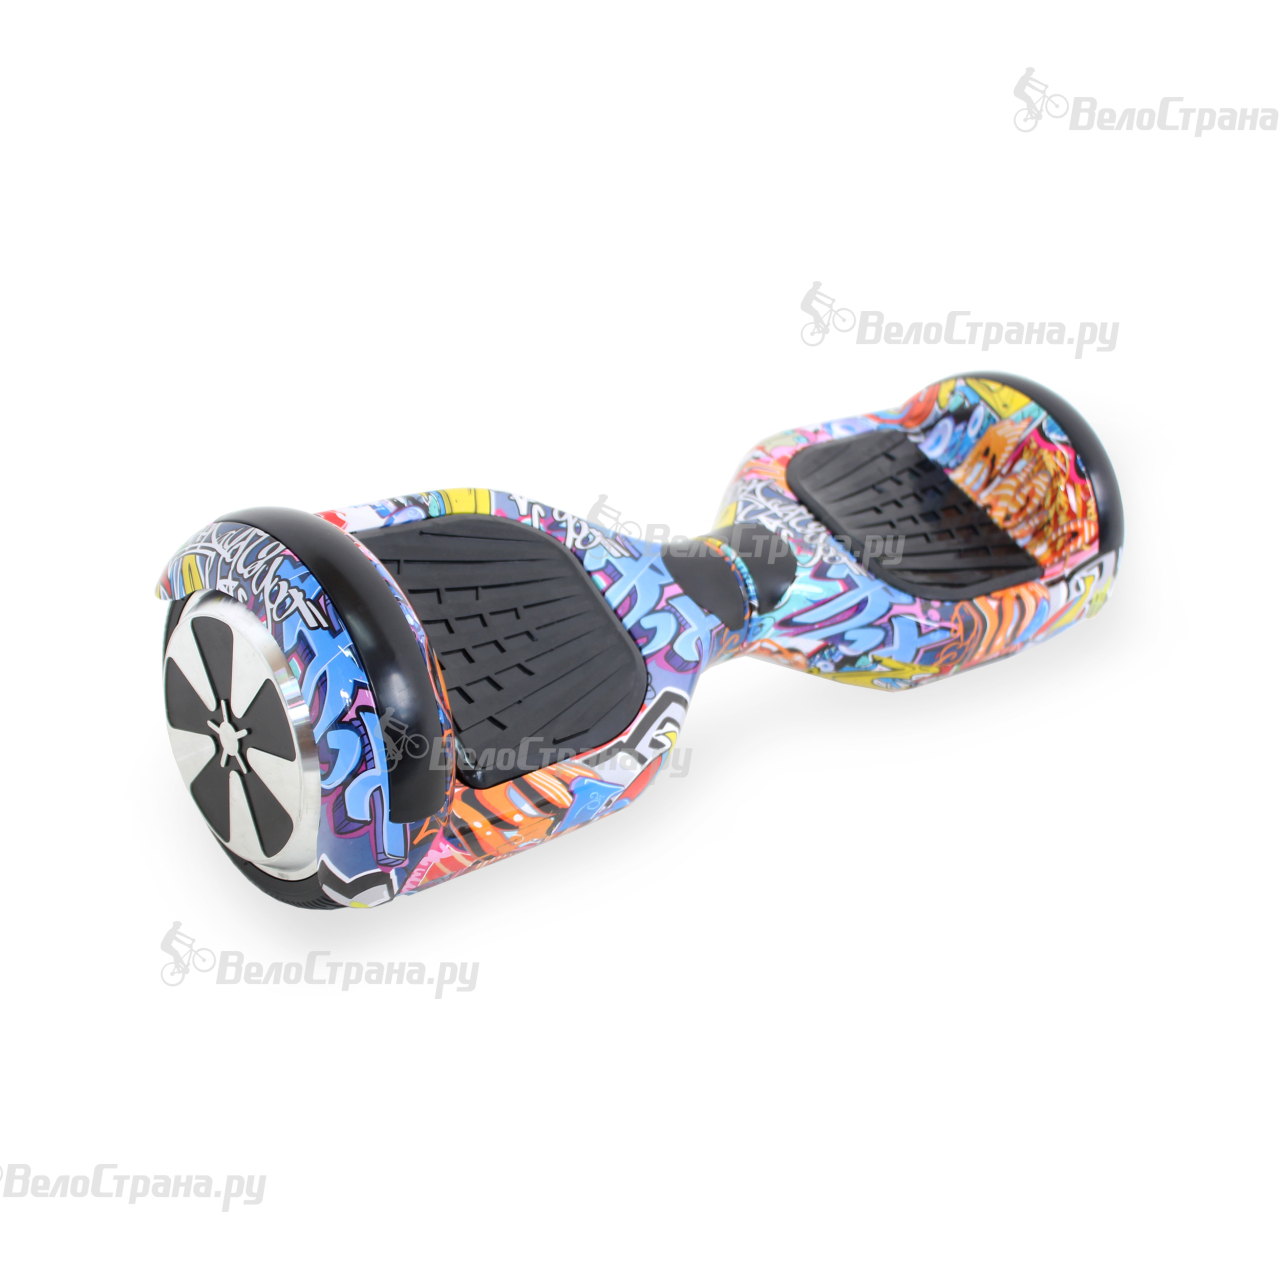 Гироскутер Smart Balance 6 LED Cartoon multicolor браслет power balance бкм 9661